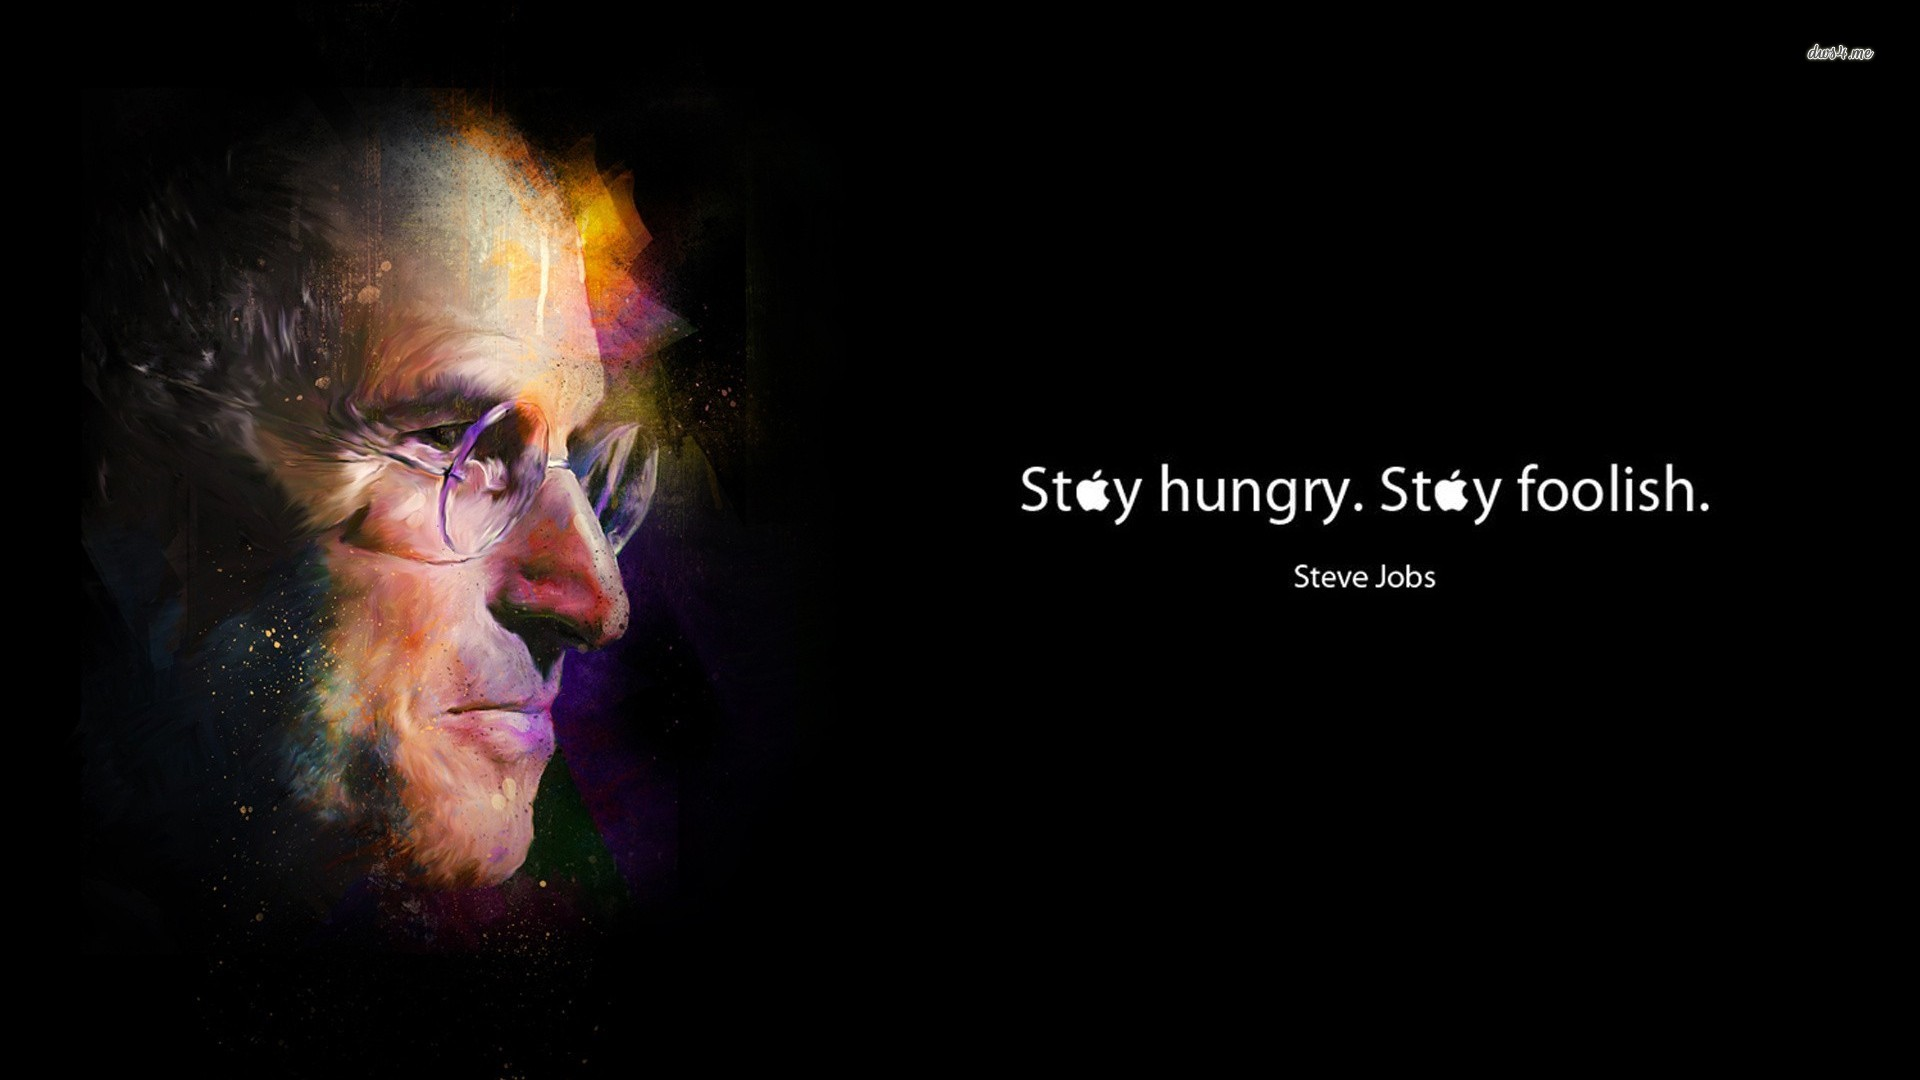 Steve Jobs Wallpaper 97061 1920x1080